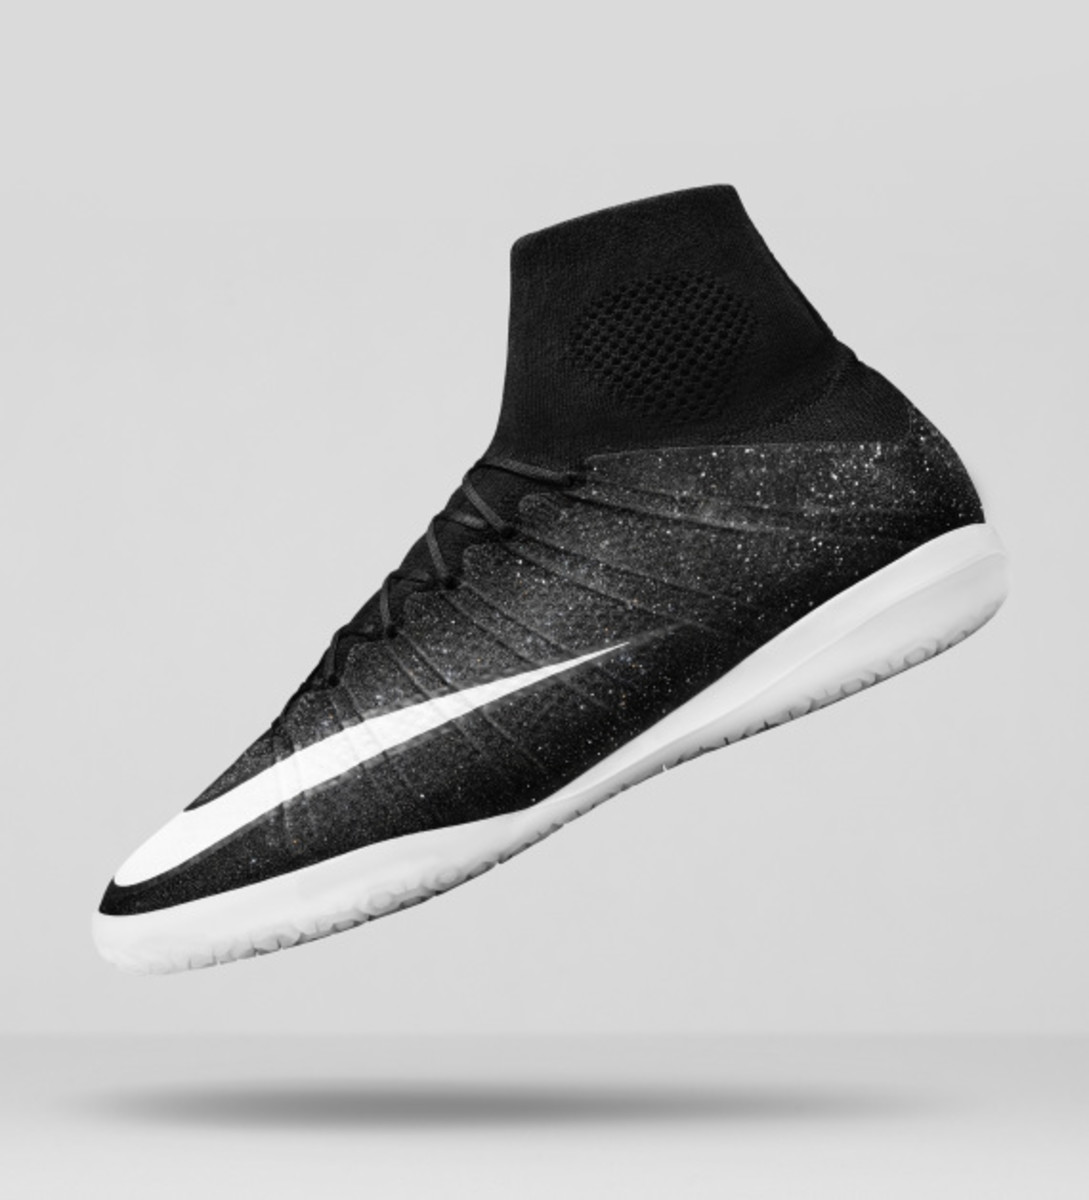 Nike Elastico Superfly IC SE - Officially Unveiled - 1